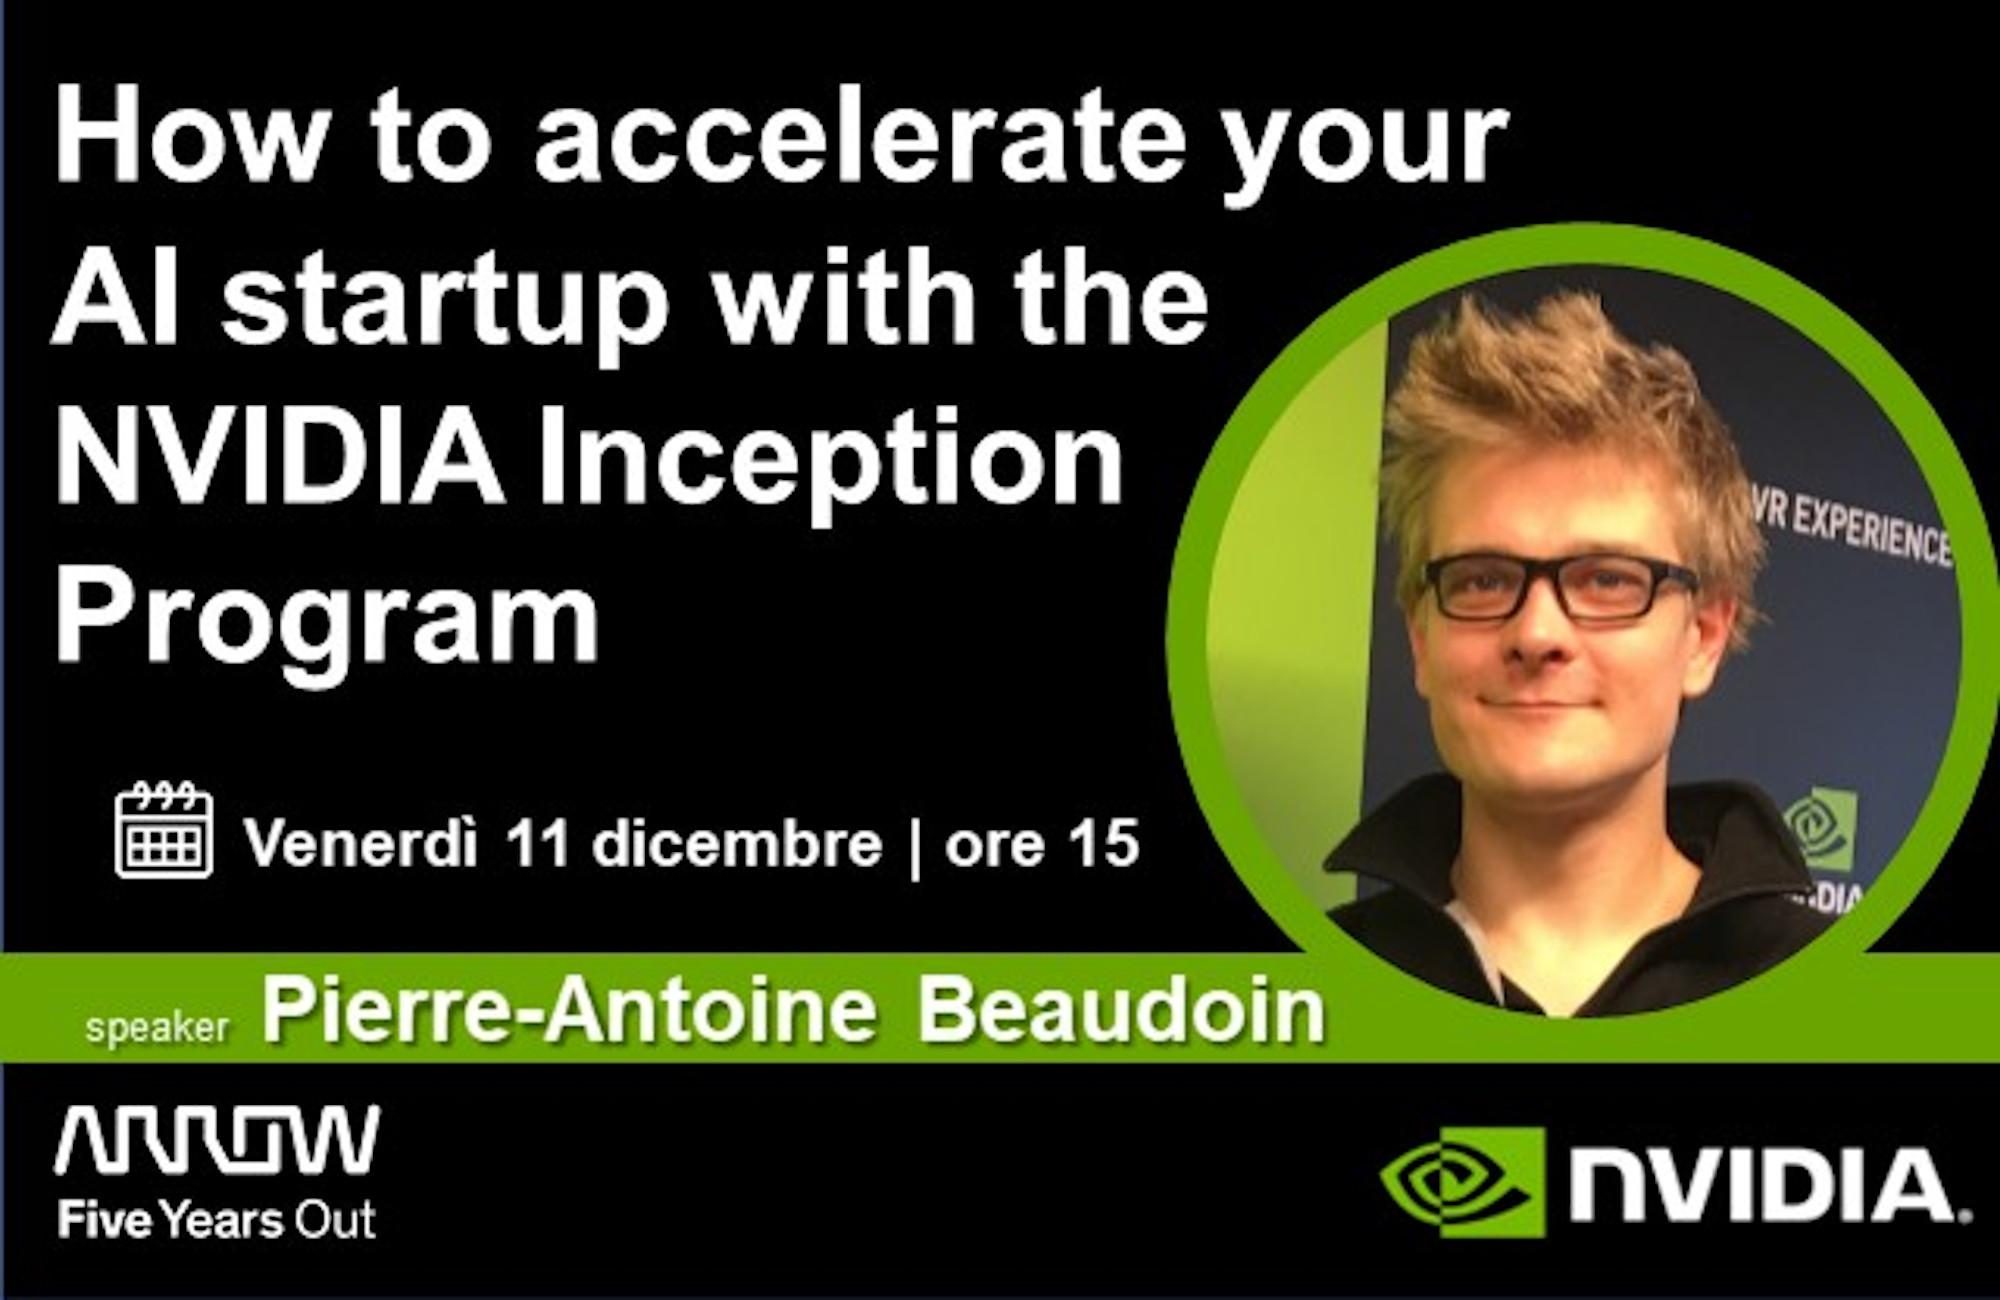 How to accelerate your AI startup with the NVIDIA Inception Program